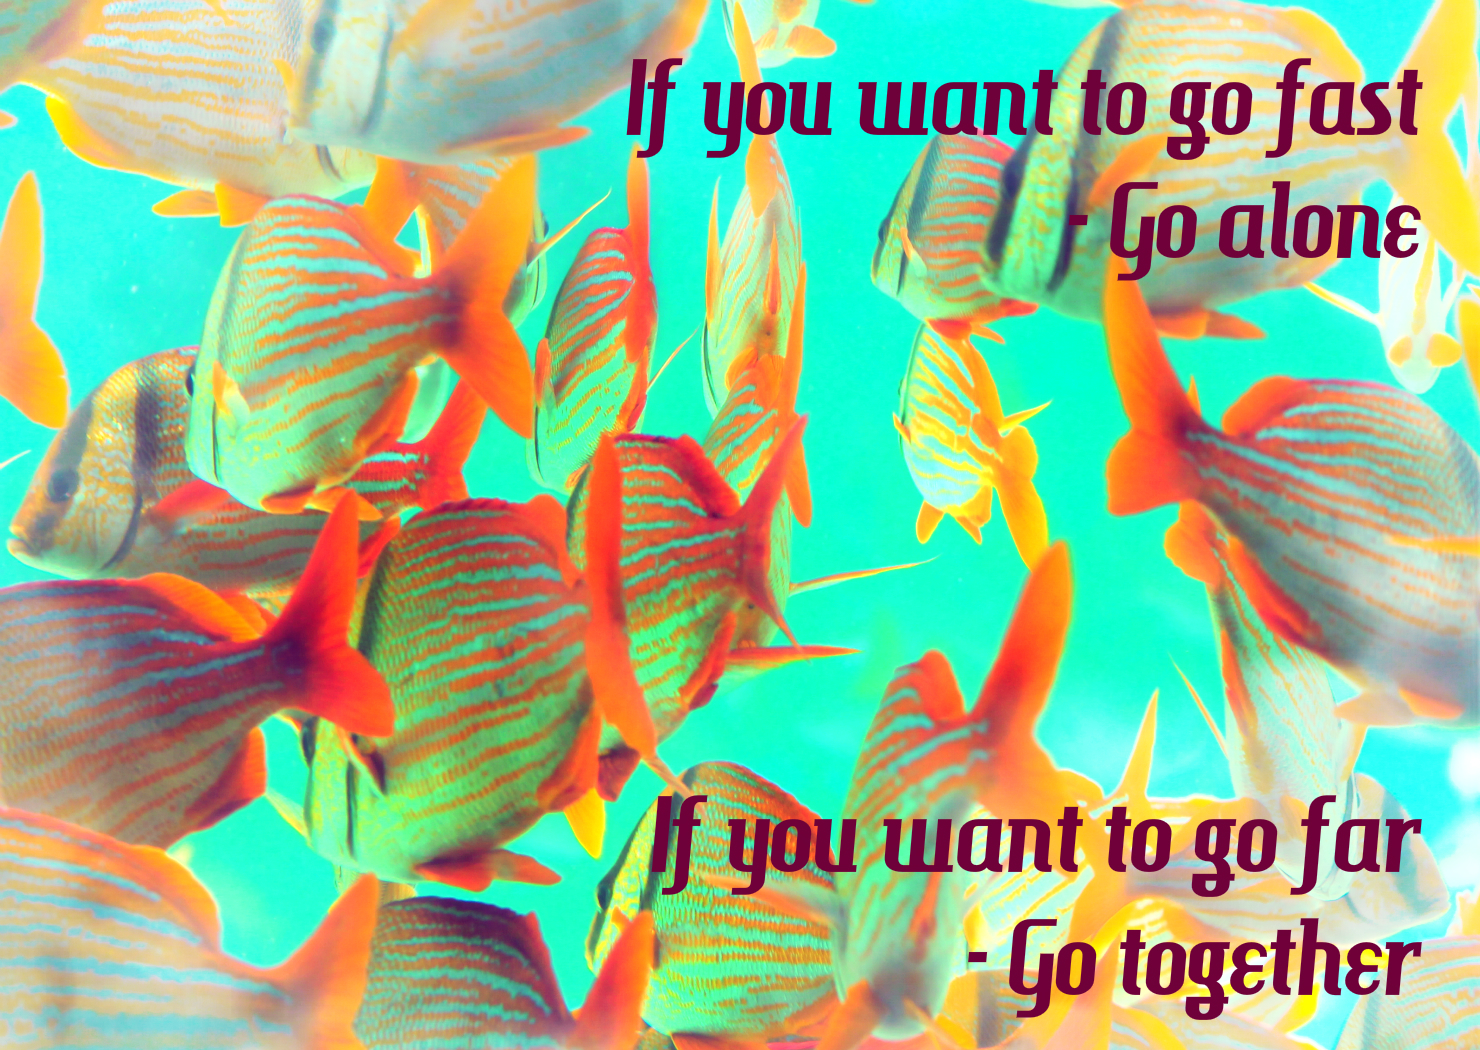 If you want to go fast - Go alone. If you want to go far - Go together.